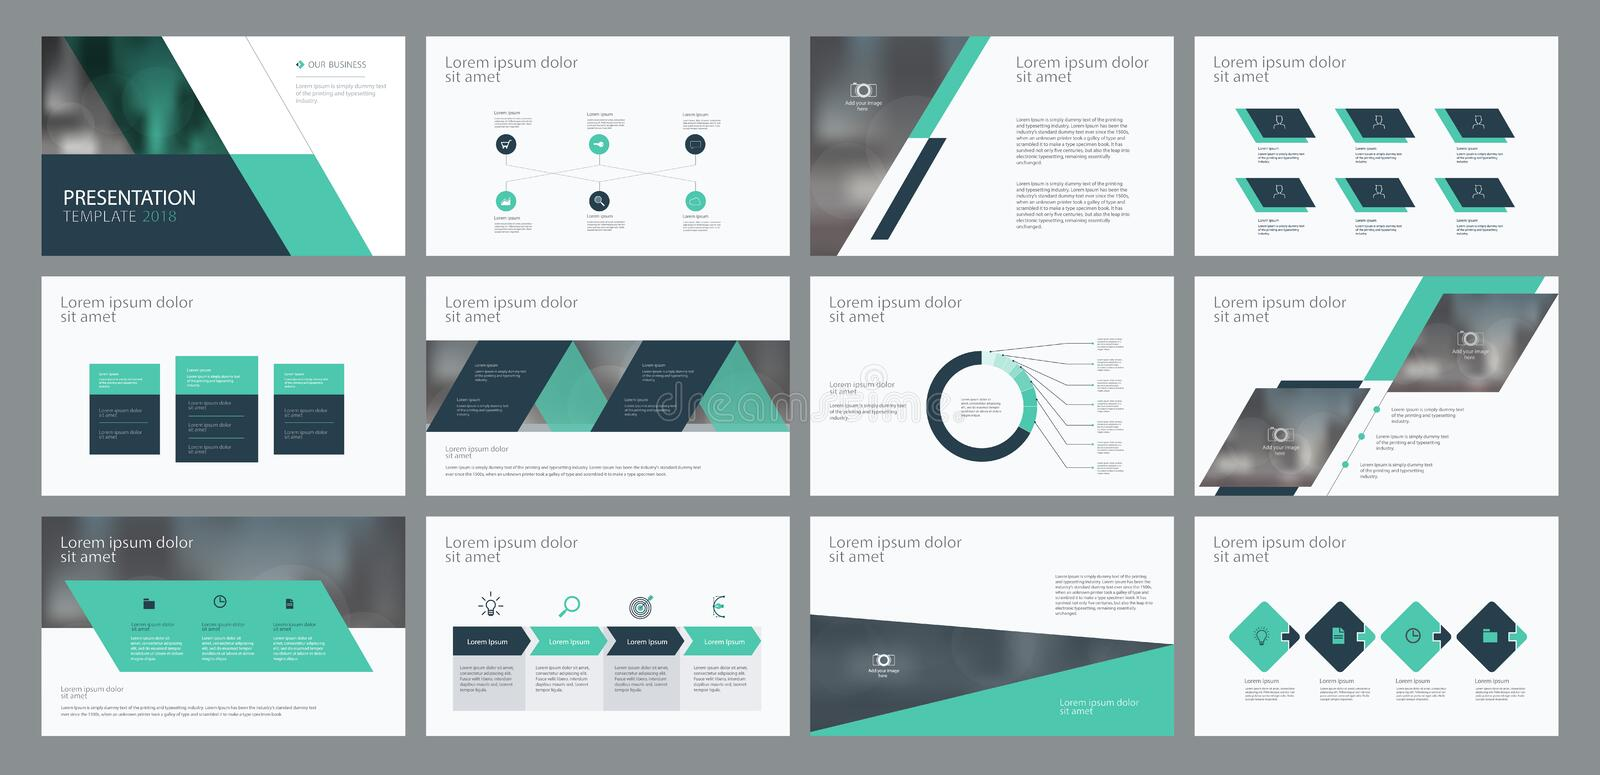 Business presentation template design and page layout design for brochure ,annual report and company profile. With info graphic elements vector illustration